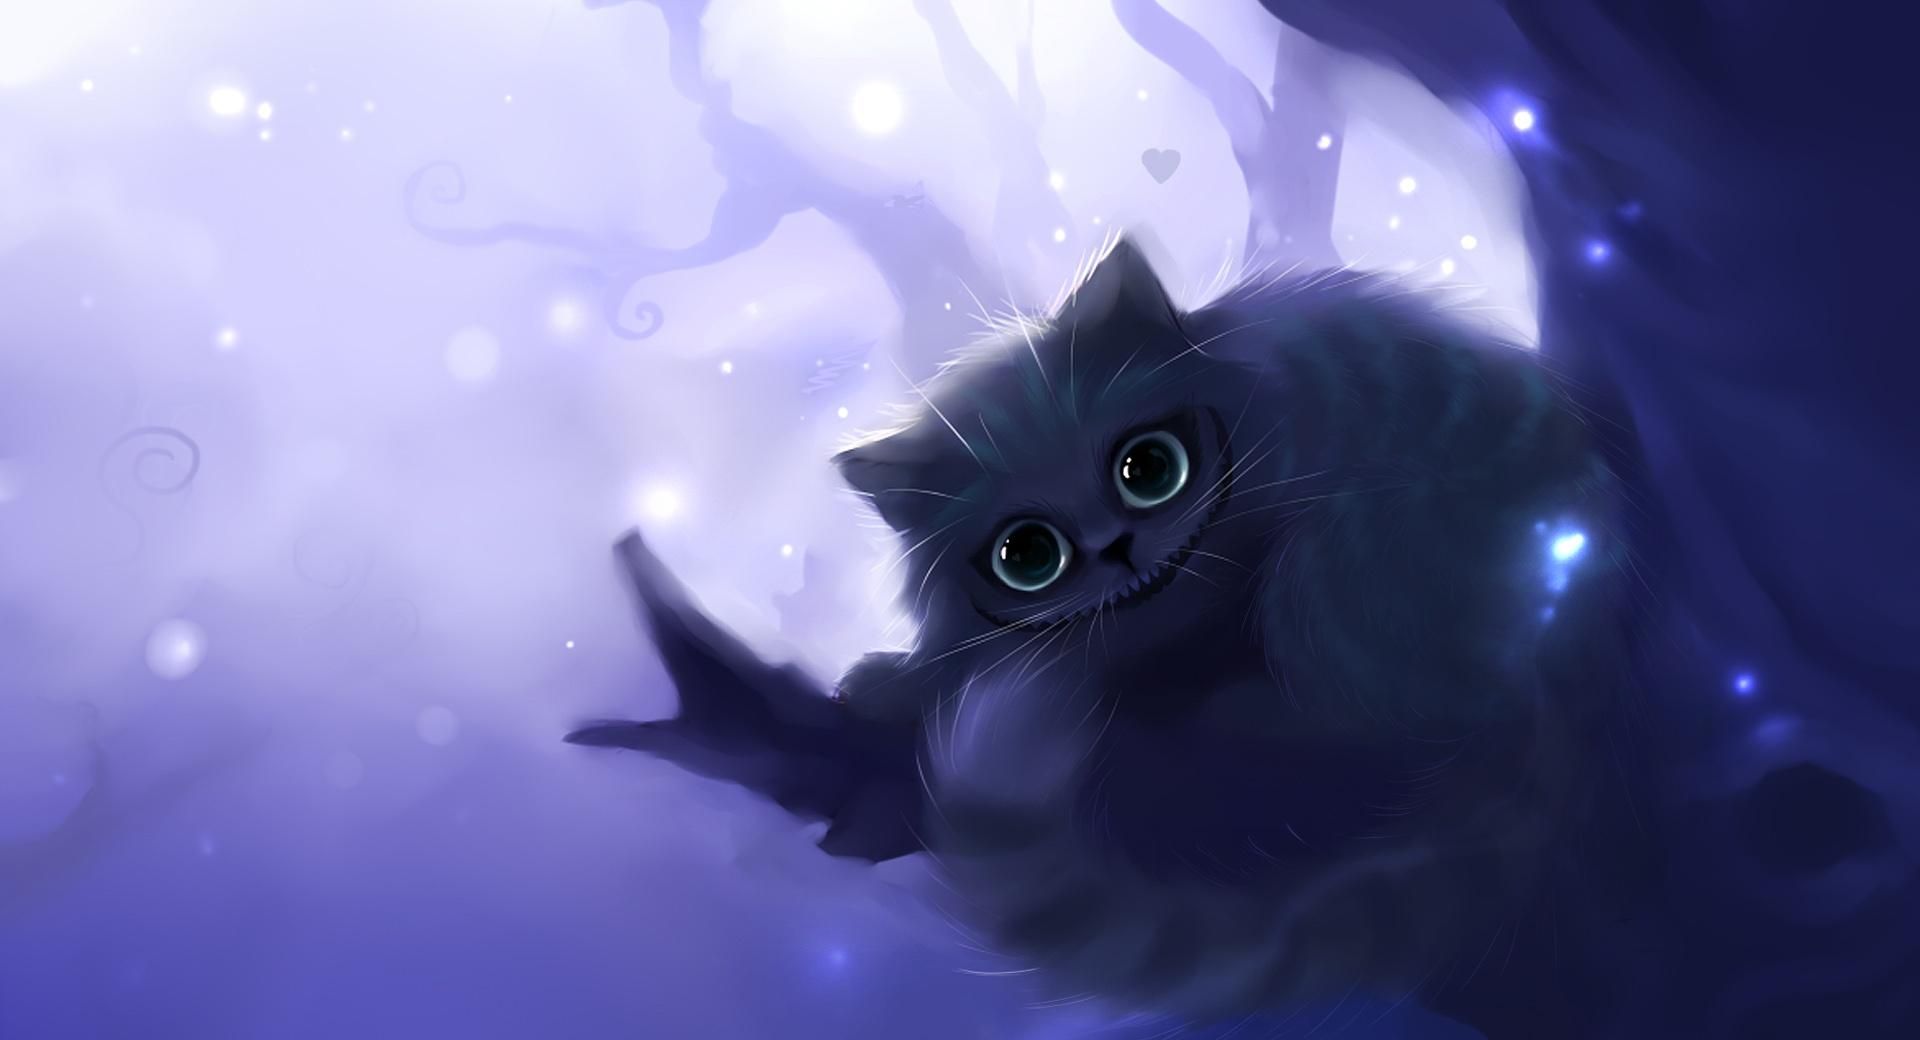 Cheshire Cat Smile wallpapers HD quality